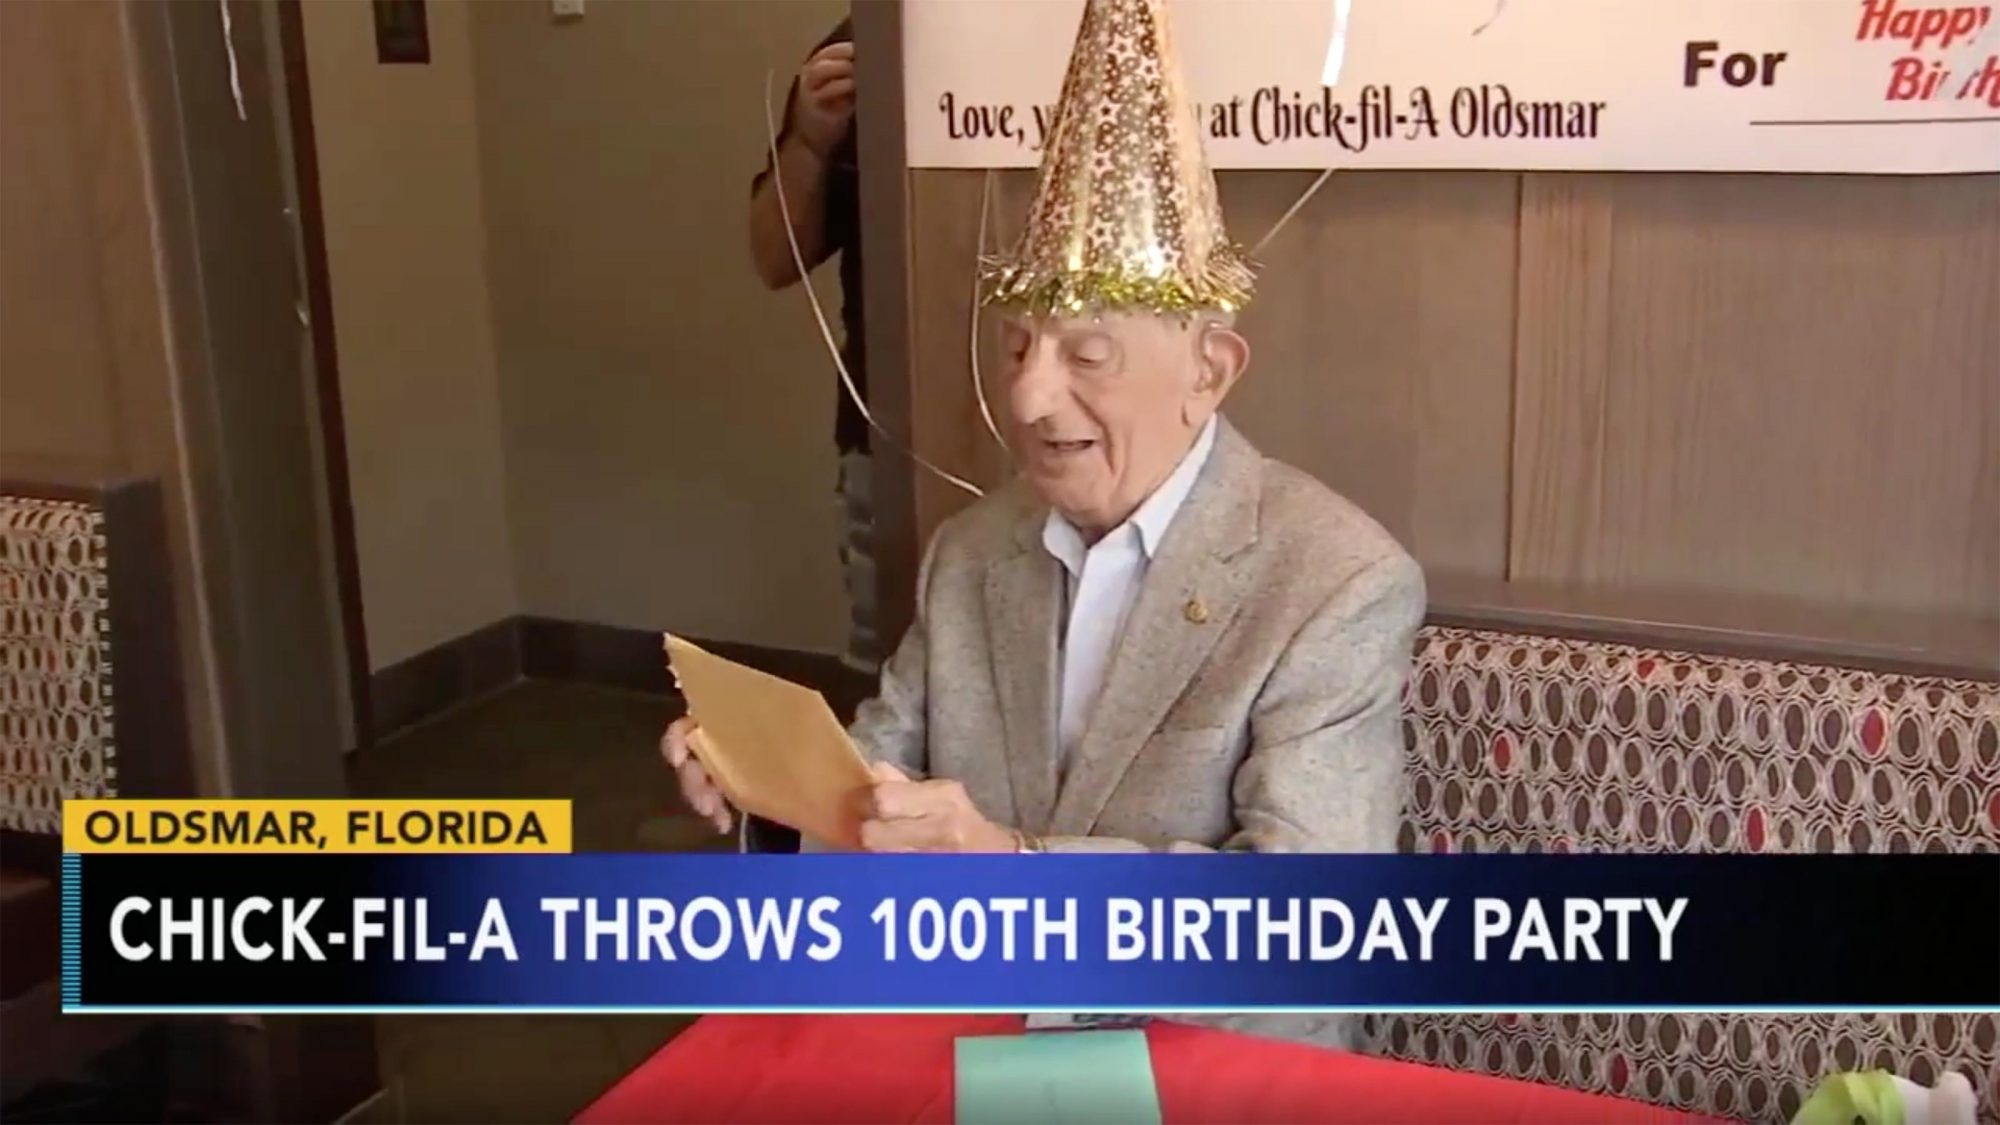 Florida Man is Gifted Free Chick-fil-A for Life to Mark His 100th Birthday